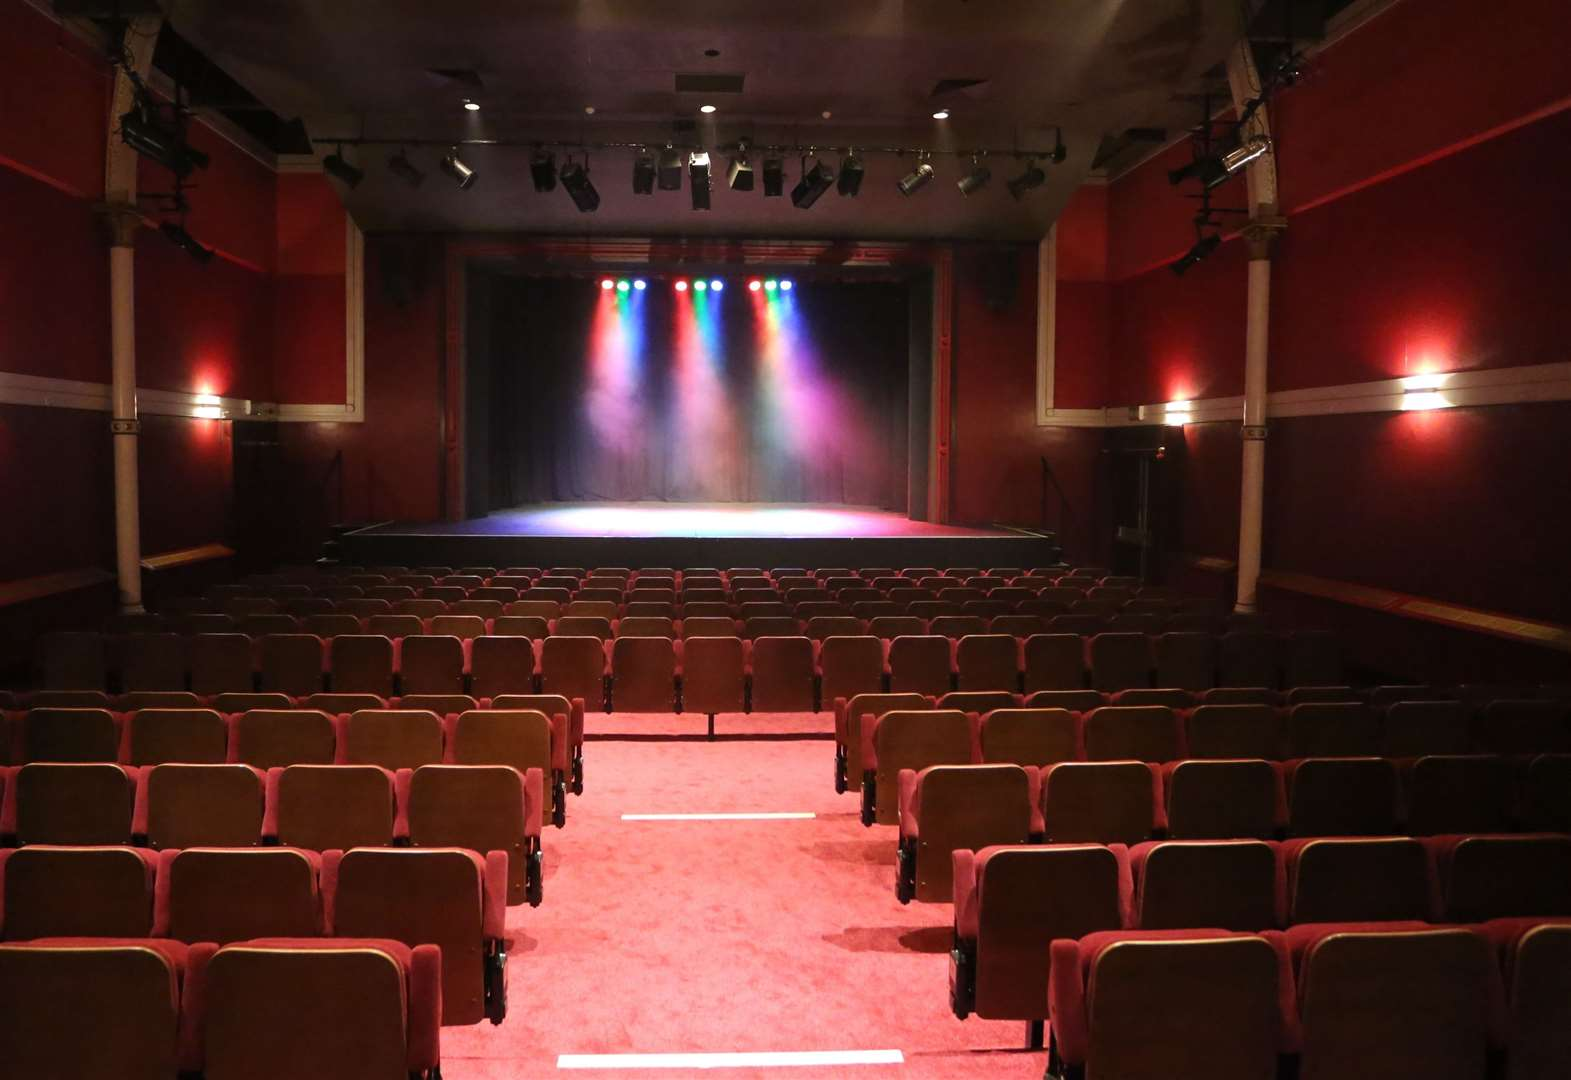 Questions raised about how Hazlitt Theatre in Maidstone will be run under plans for local council to take control